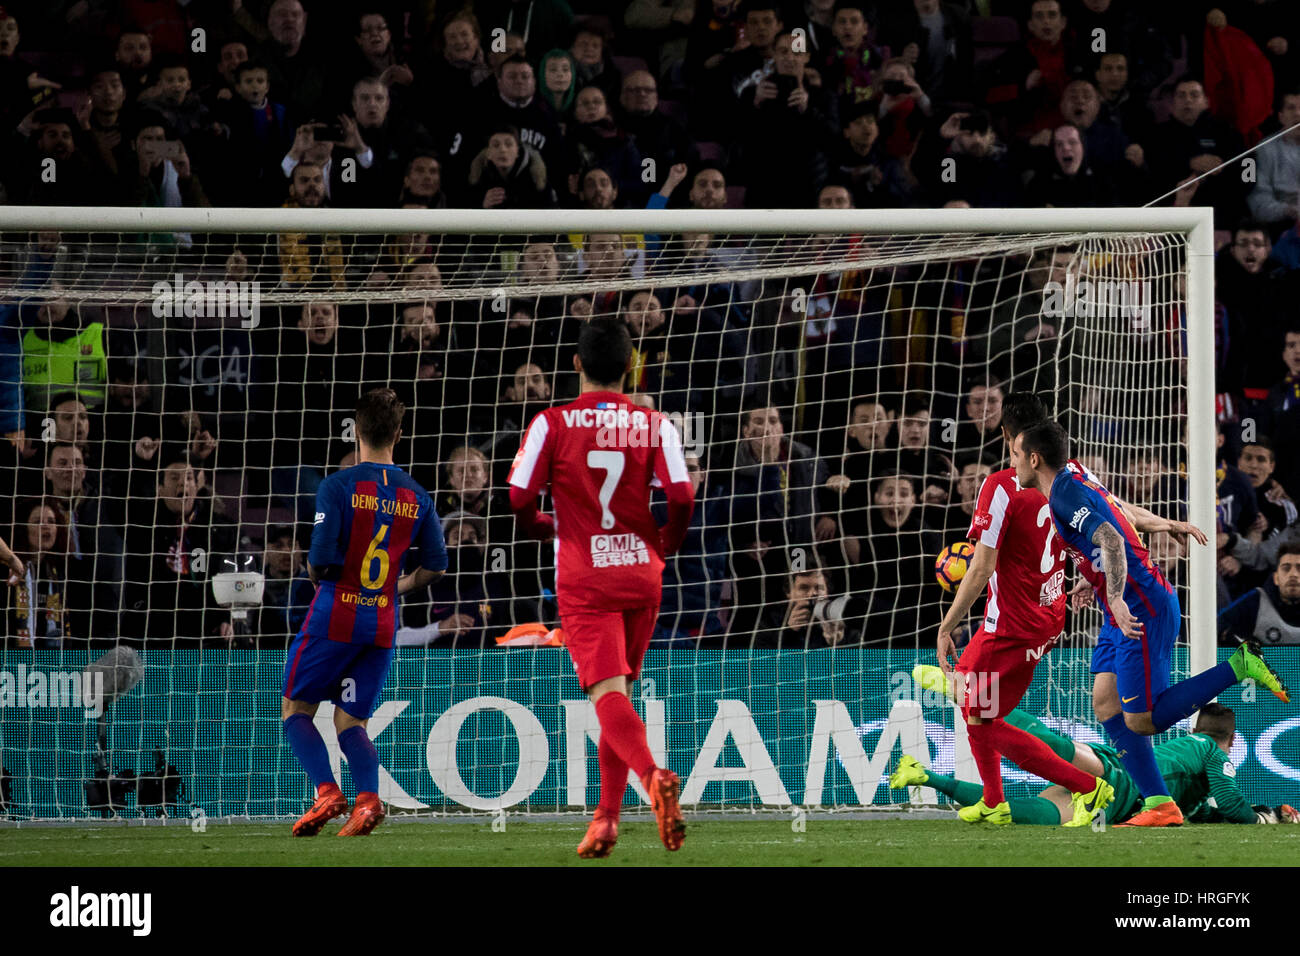 Camp Not Stadium, Barcelona, Spain. 1st March, 2017. Paco Alcacers goal at Camp Nou Stadium, Barcelona, Spain. Credit: - Stock Image